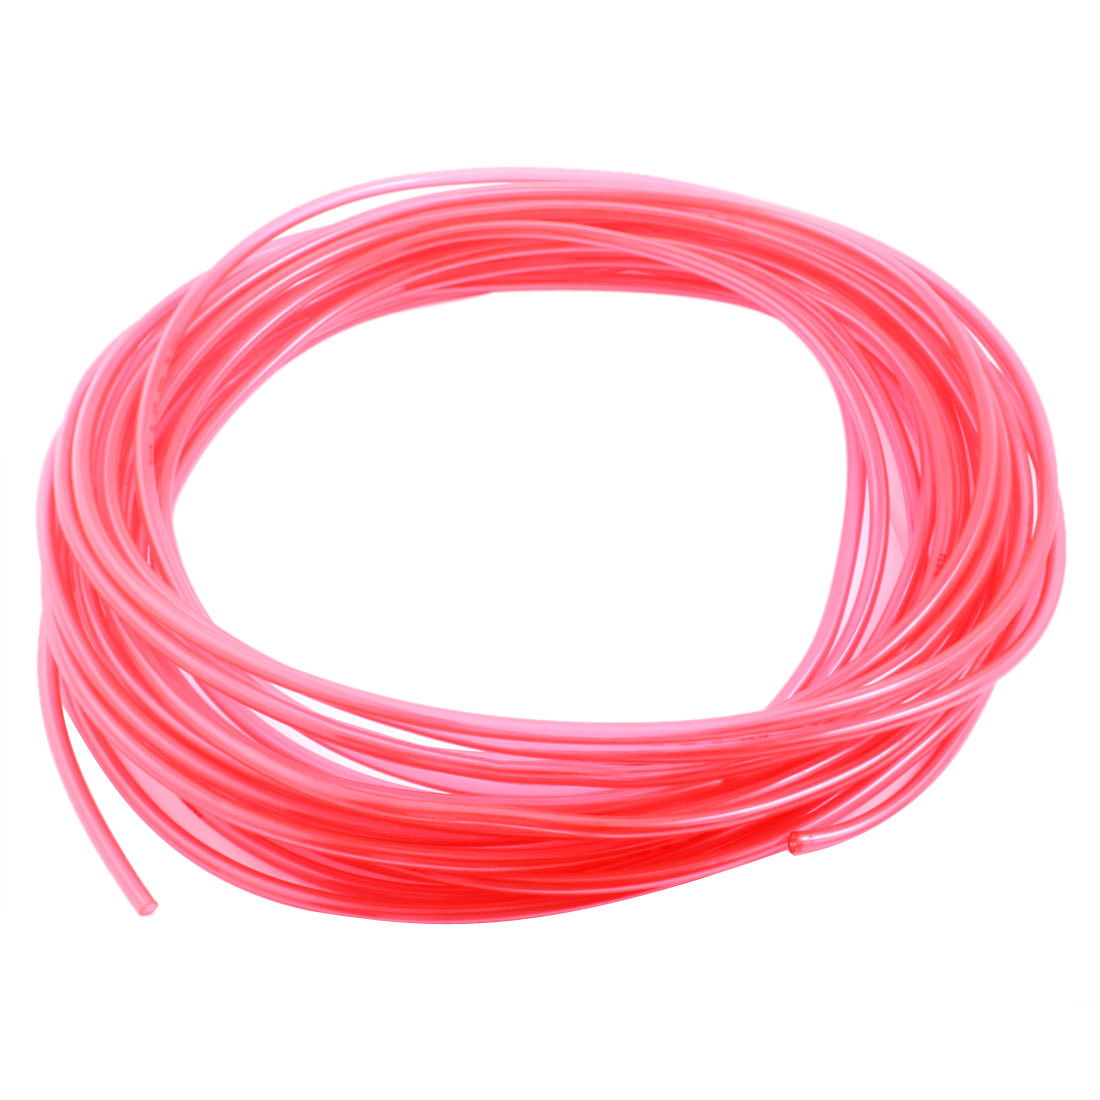 15M/50Ft 4x6mm Fuel Gas Petrol Diesel Flexible Air PU Tubing Pneumatic Pipe Tube Hose Clear Red